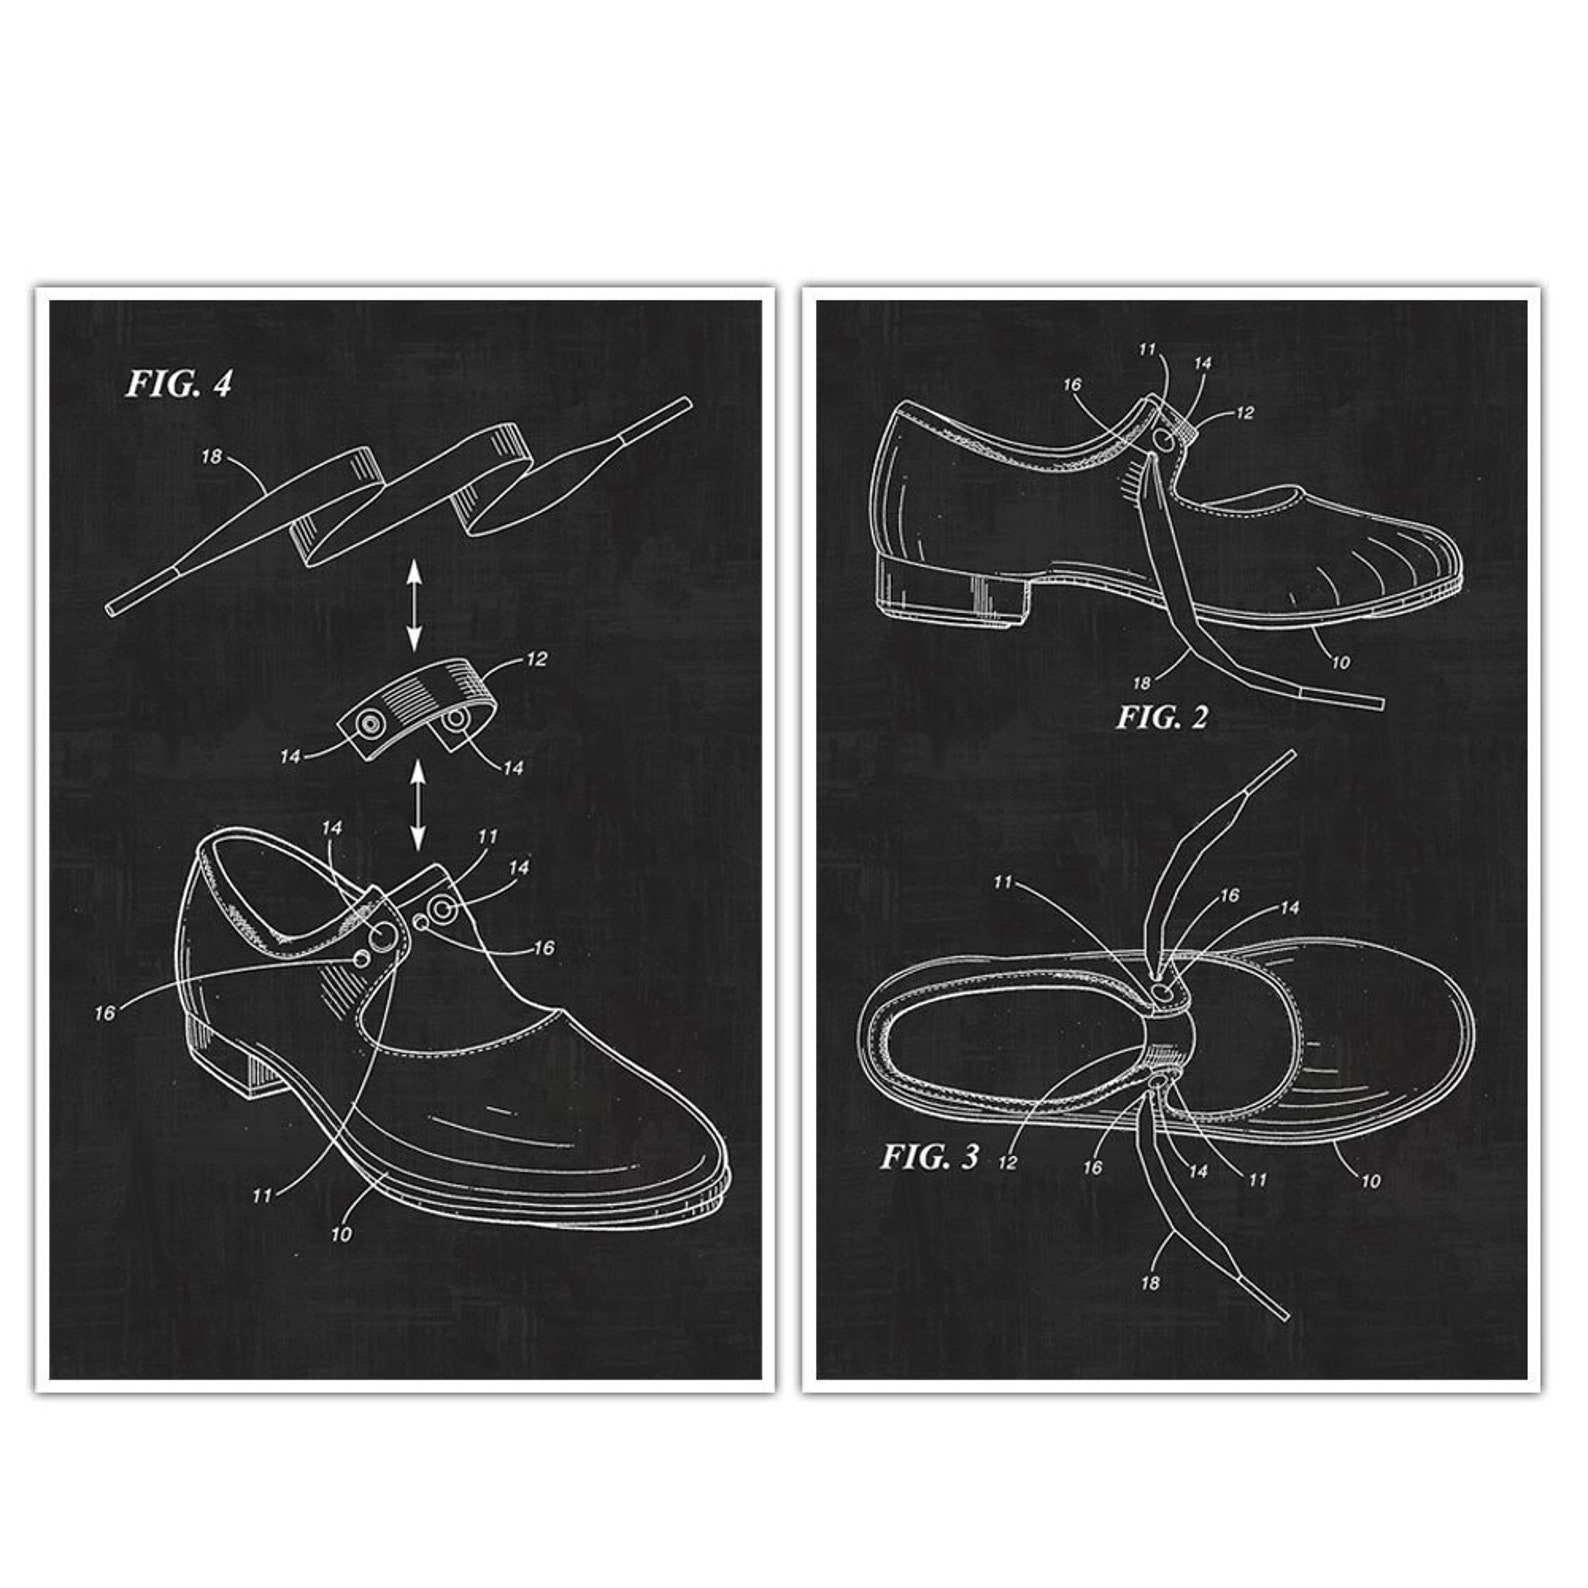 ballet tap shoes patent print posters – set of 2